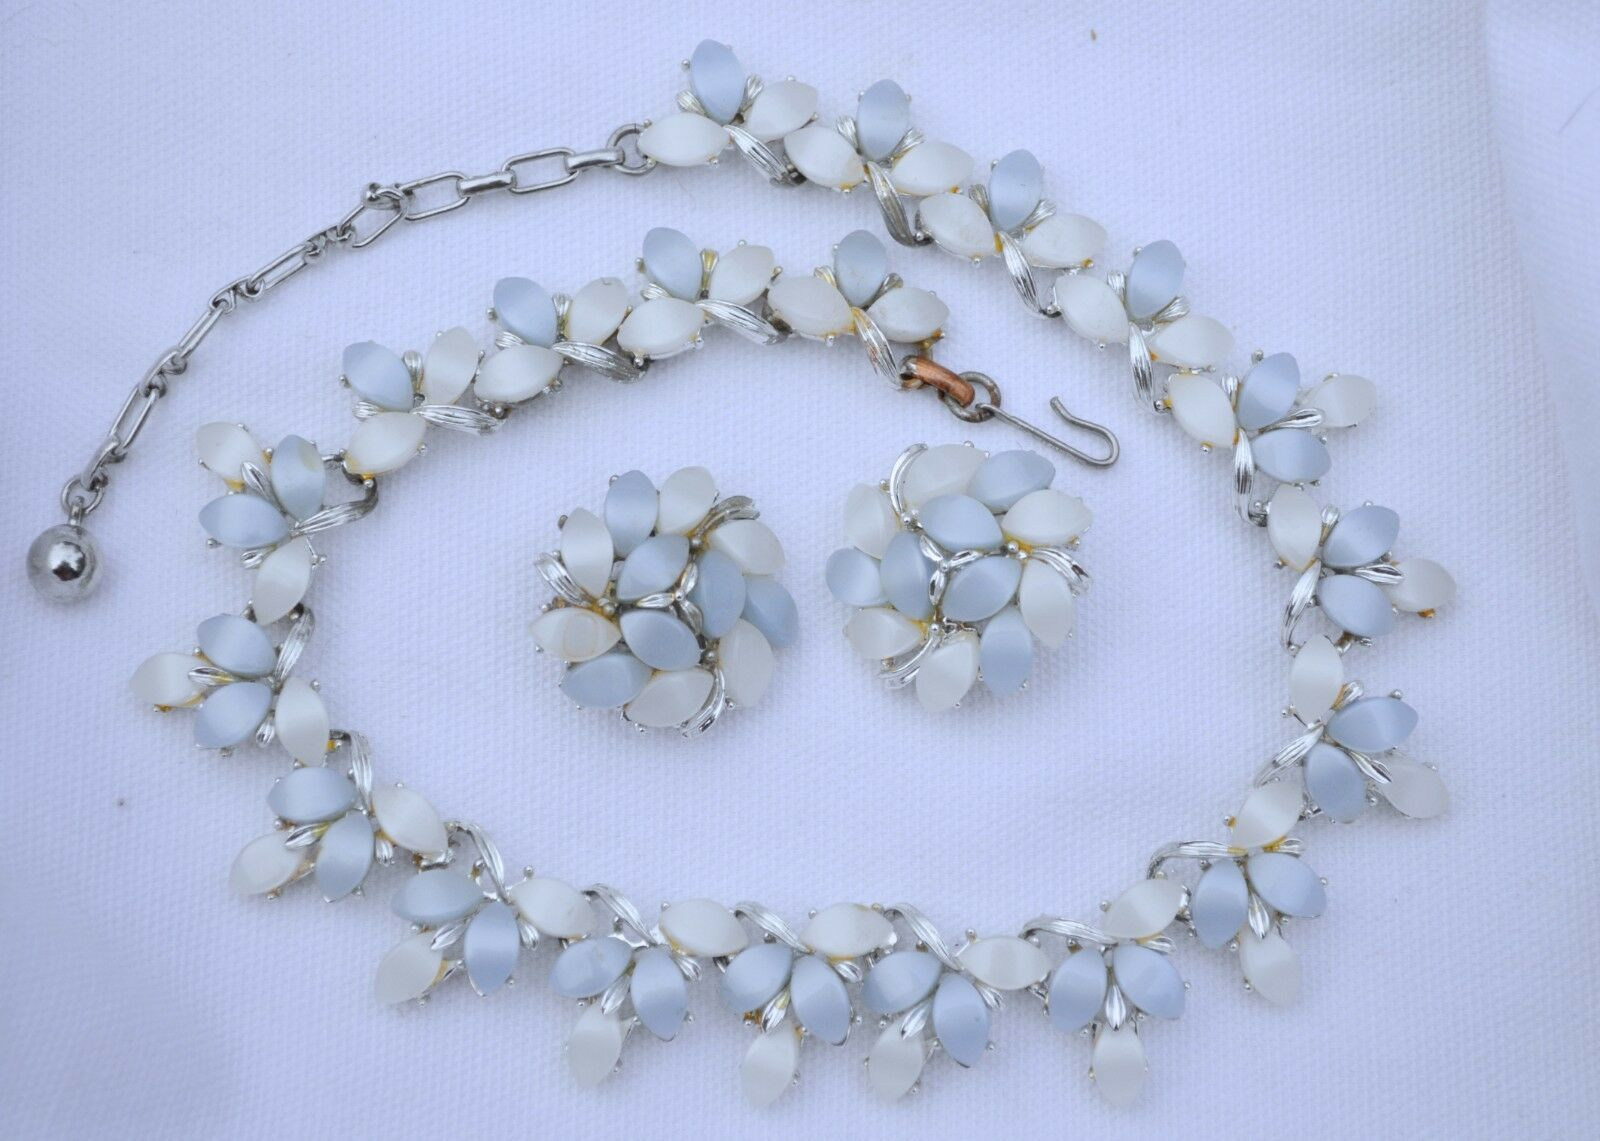 Vintage 50s thermoset Kramer necklace & earring set plastic cabochon blue/white